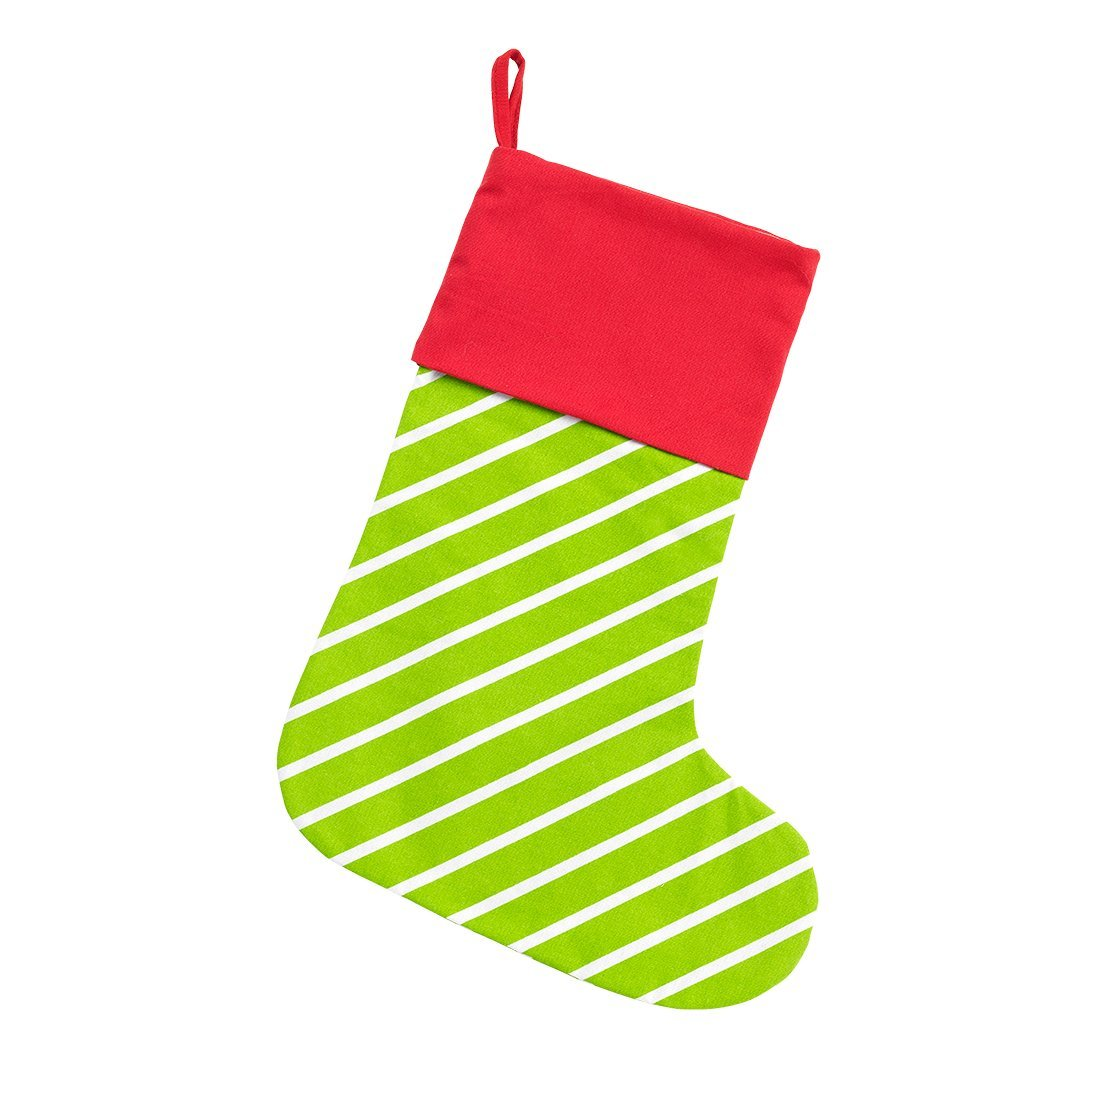 Blank christmas stocking clipart stripes jpg royalty free download Christmas Stocking in Red with White Polka Dots with Green Stripe Trim jpg royalty free download